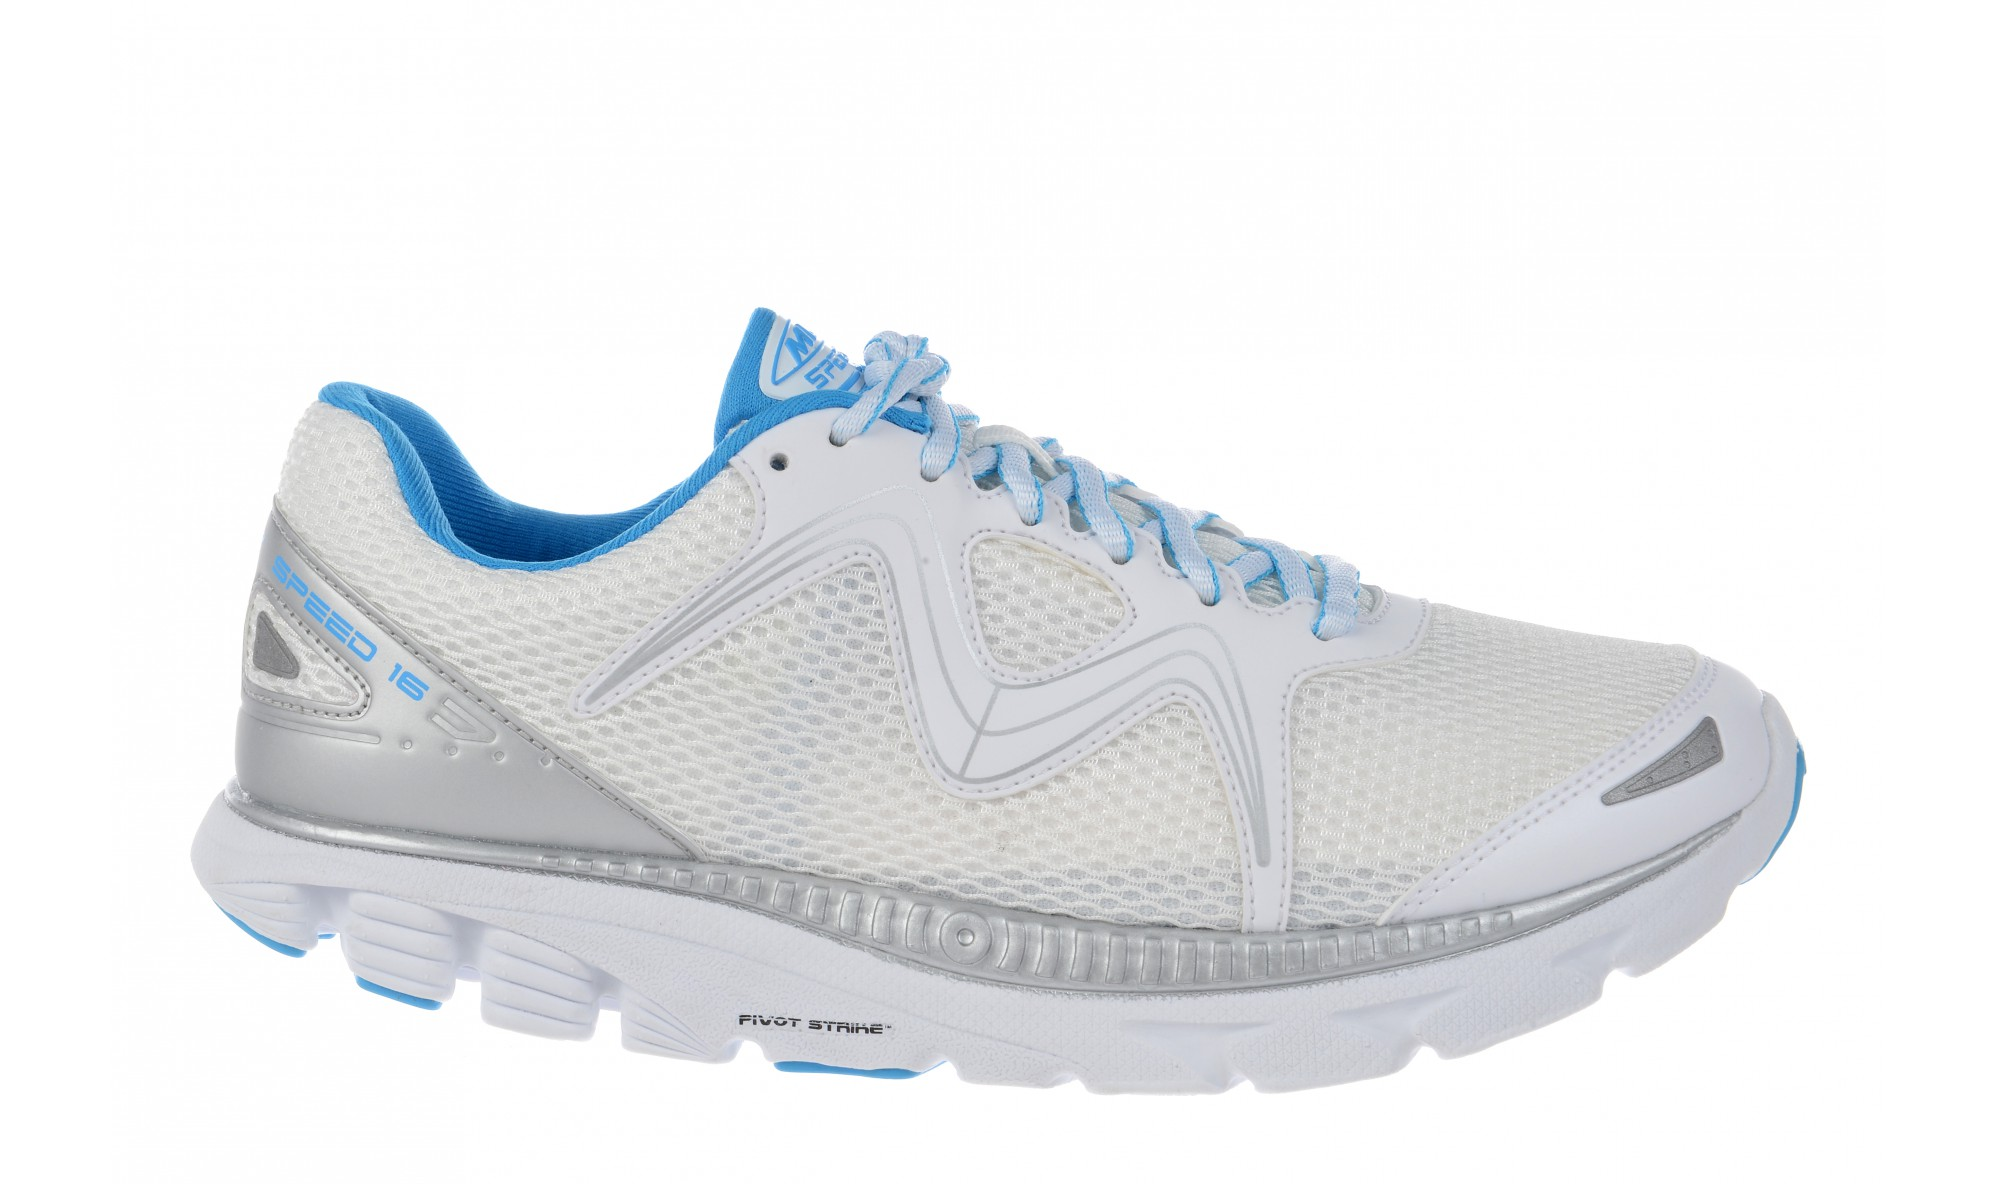 MBT Women's Speed 16 Lace Up White / Powder Blue / Silver